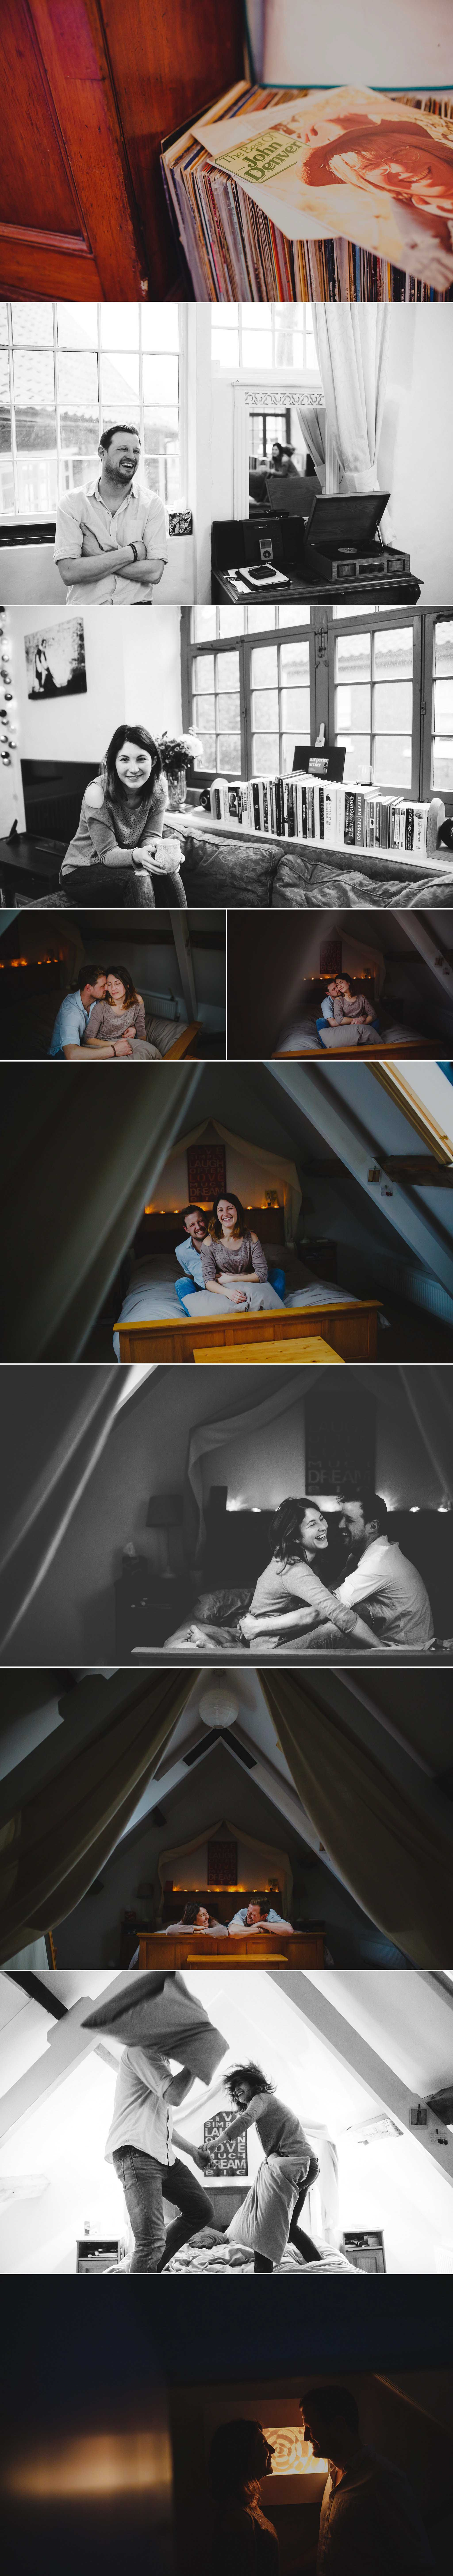 Norwich Pre wedding Photography Rob Dodsworth Photography 3